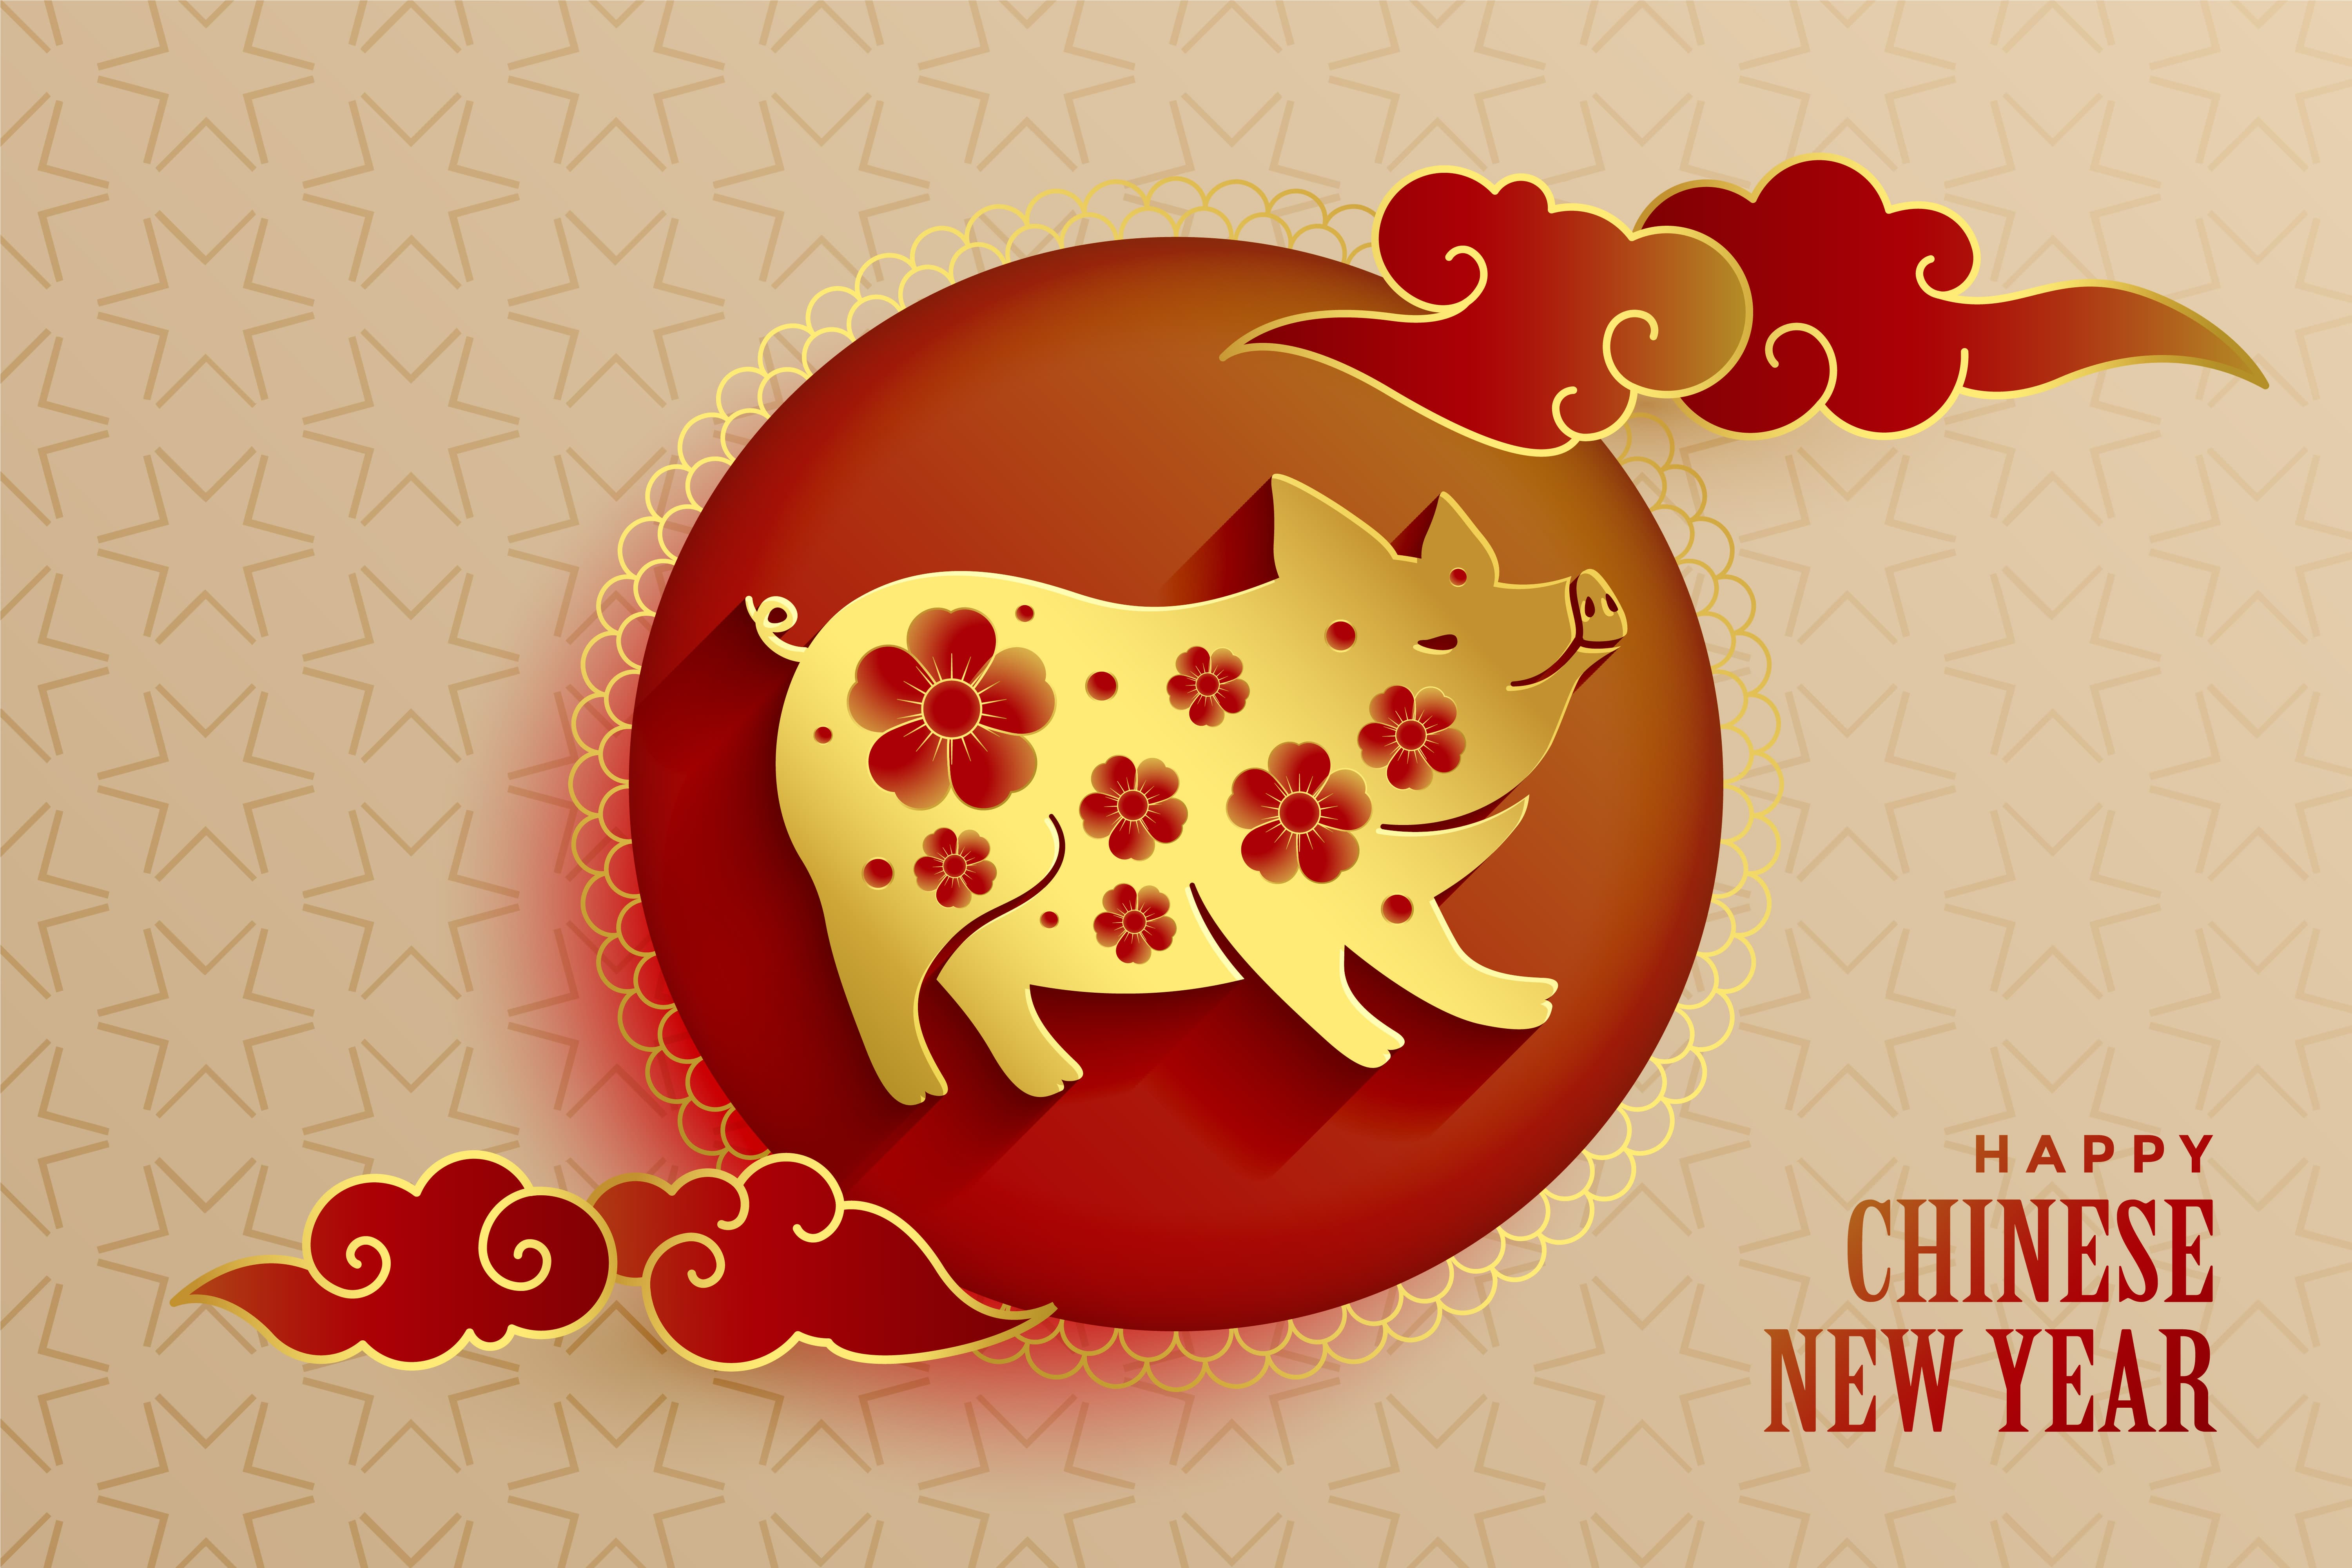 Pig Fortune in 2019: What Does the Chinese New Year Say about Your